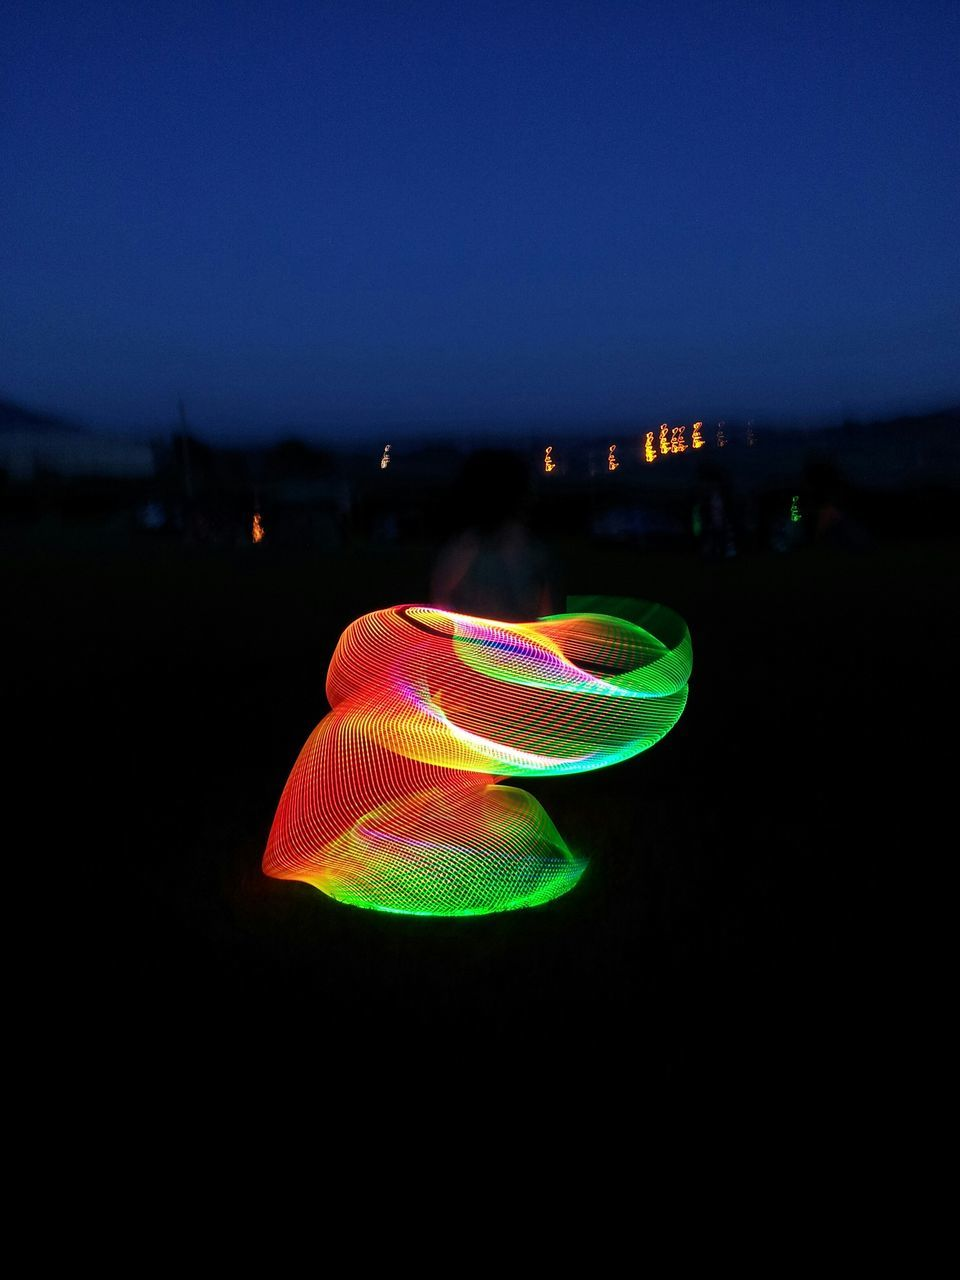 Low Angle View Of Light Painting Against Sky At Dusk